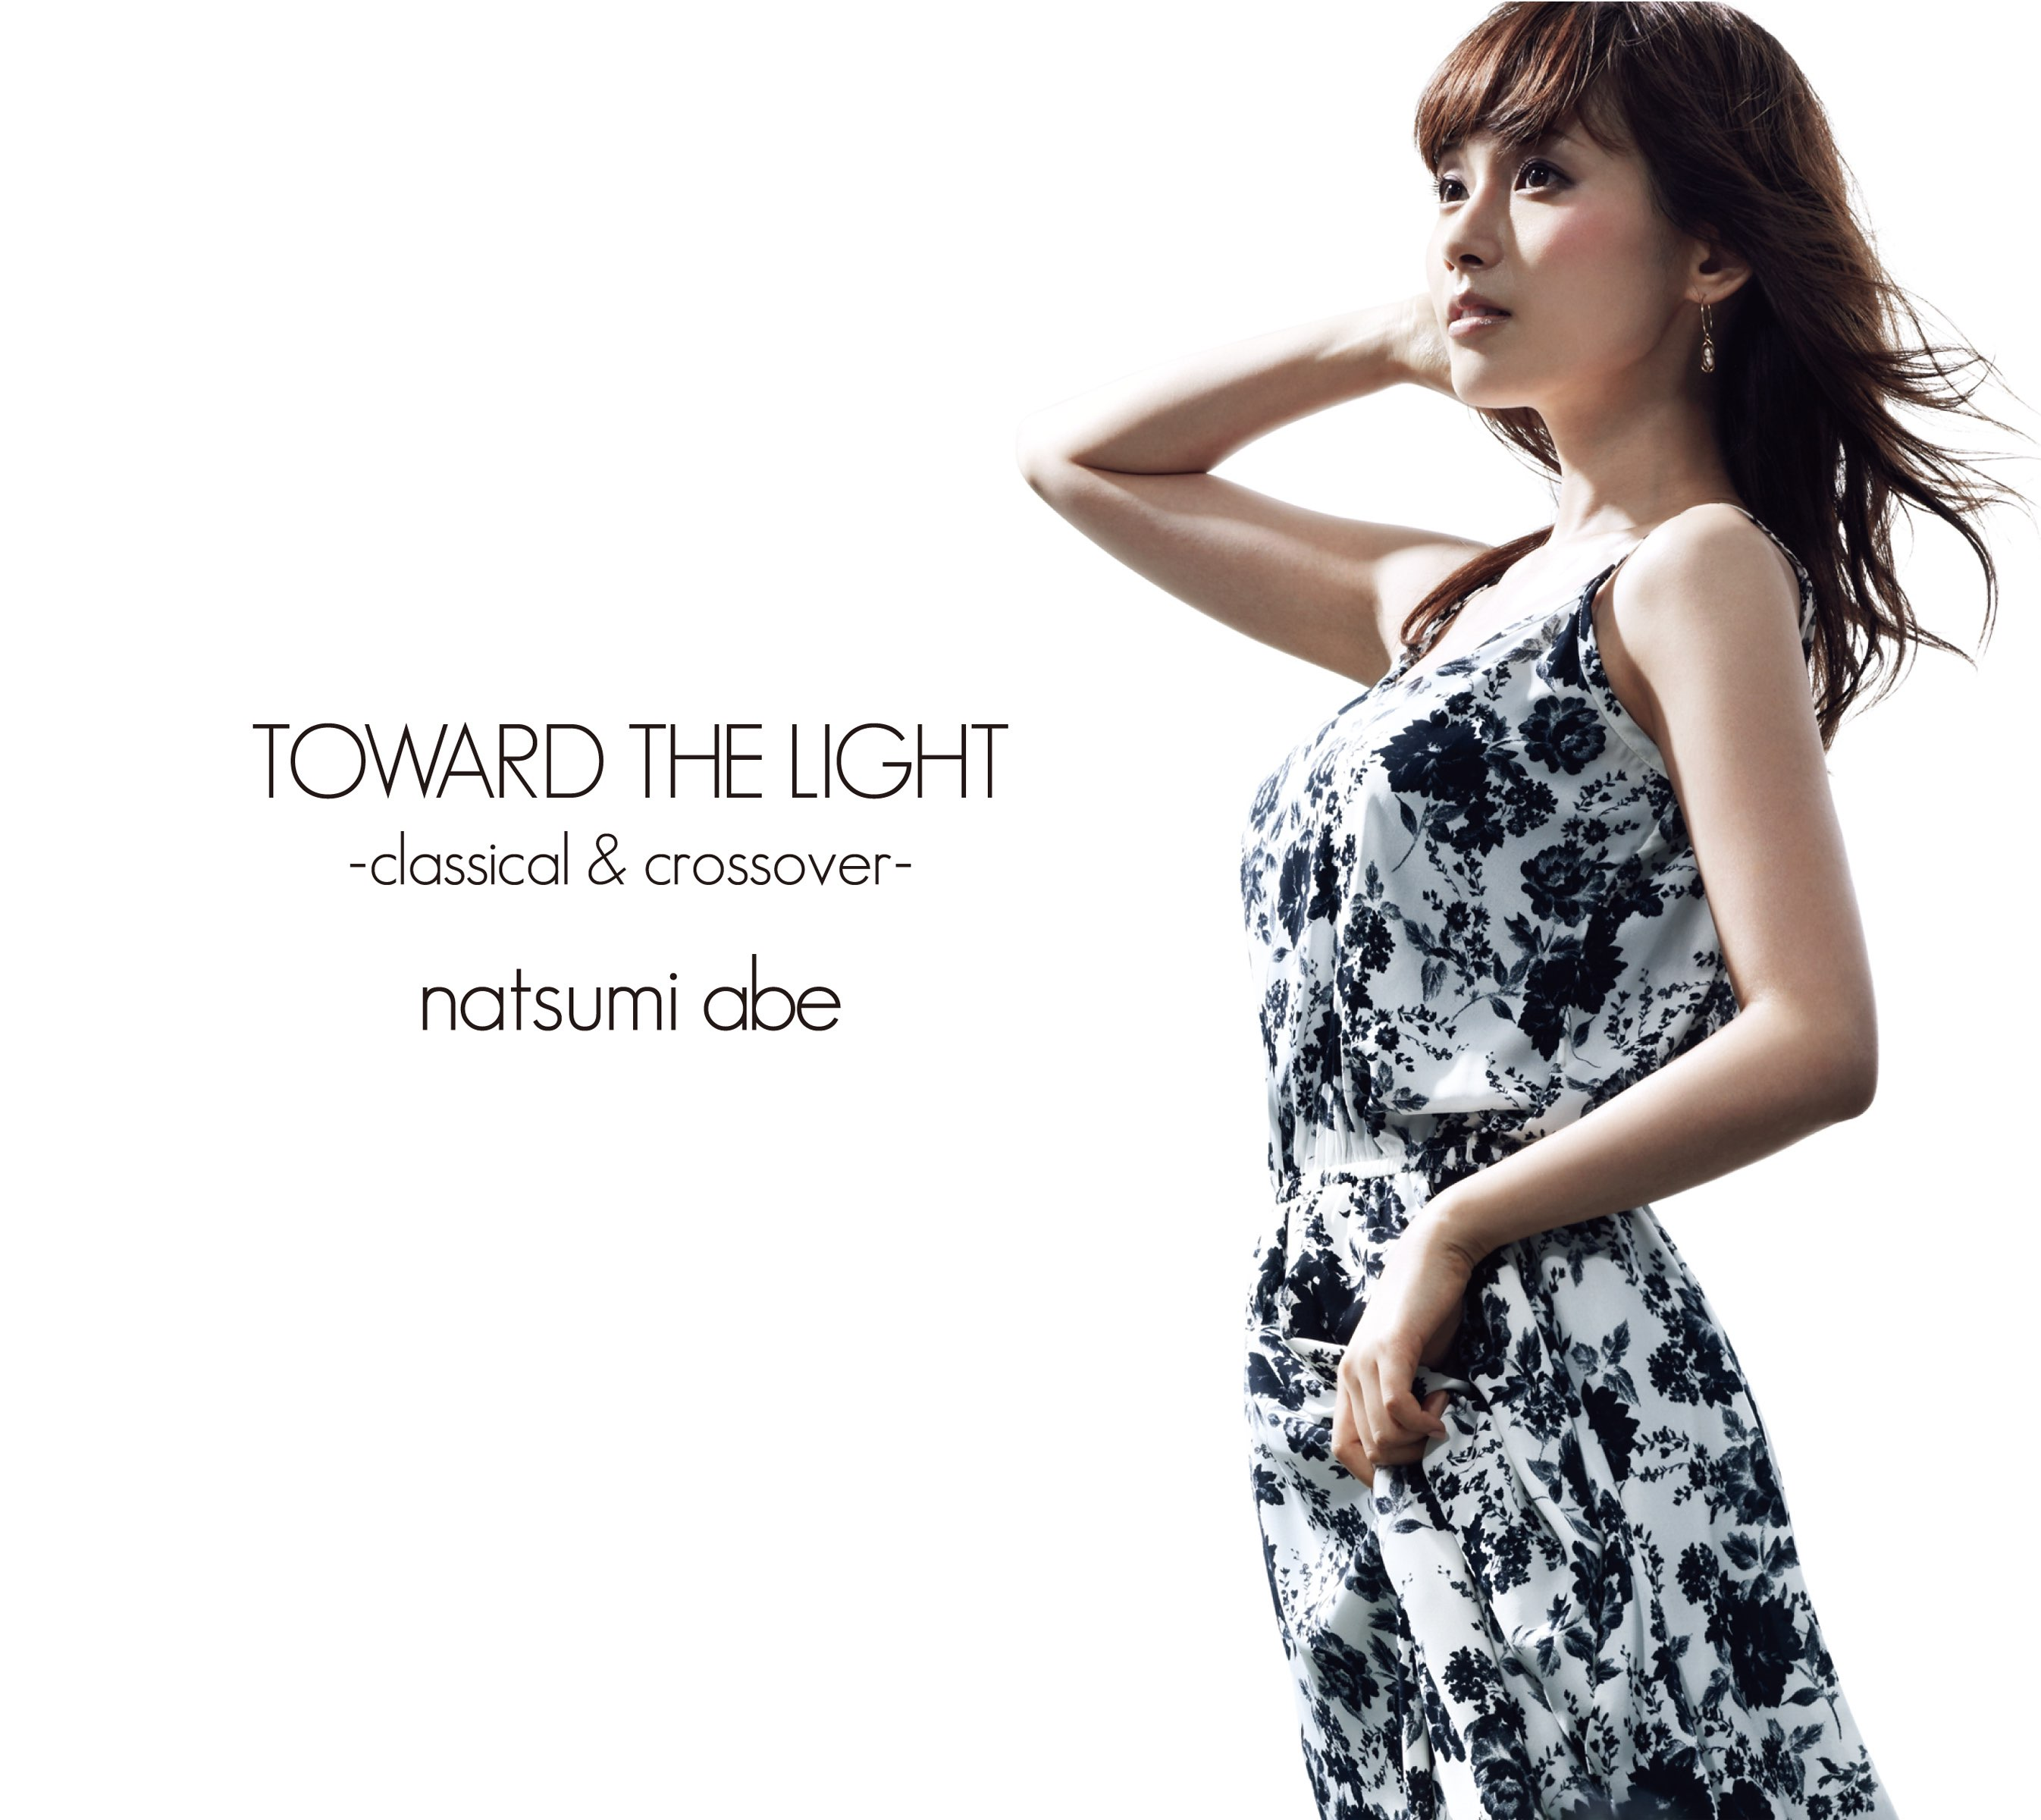 TOWARD THE LIGHT -Classical & Crossover-